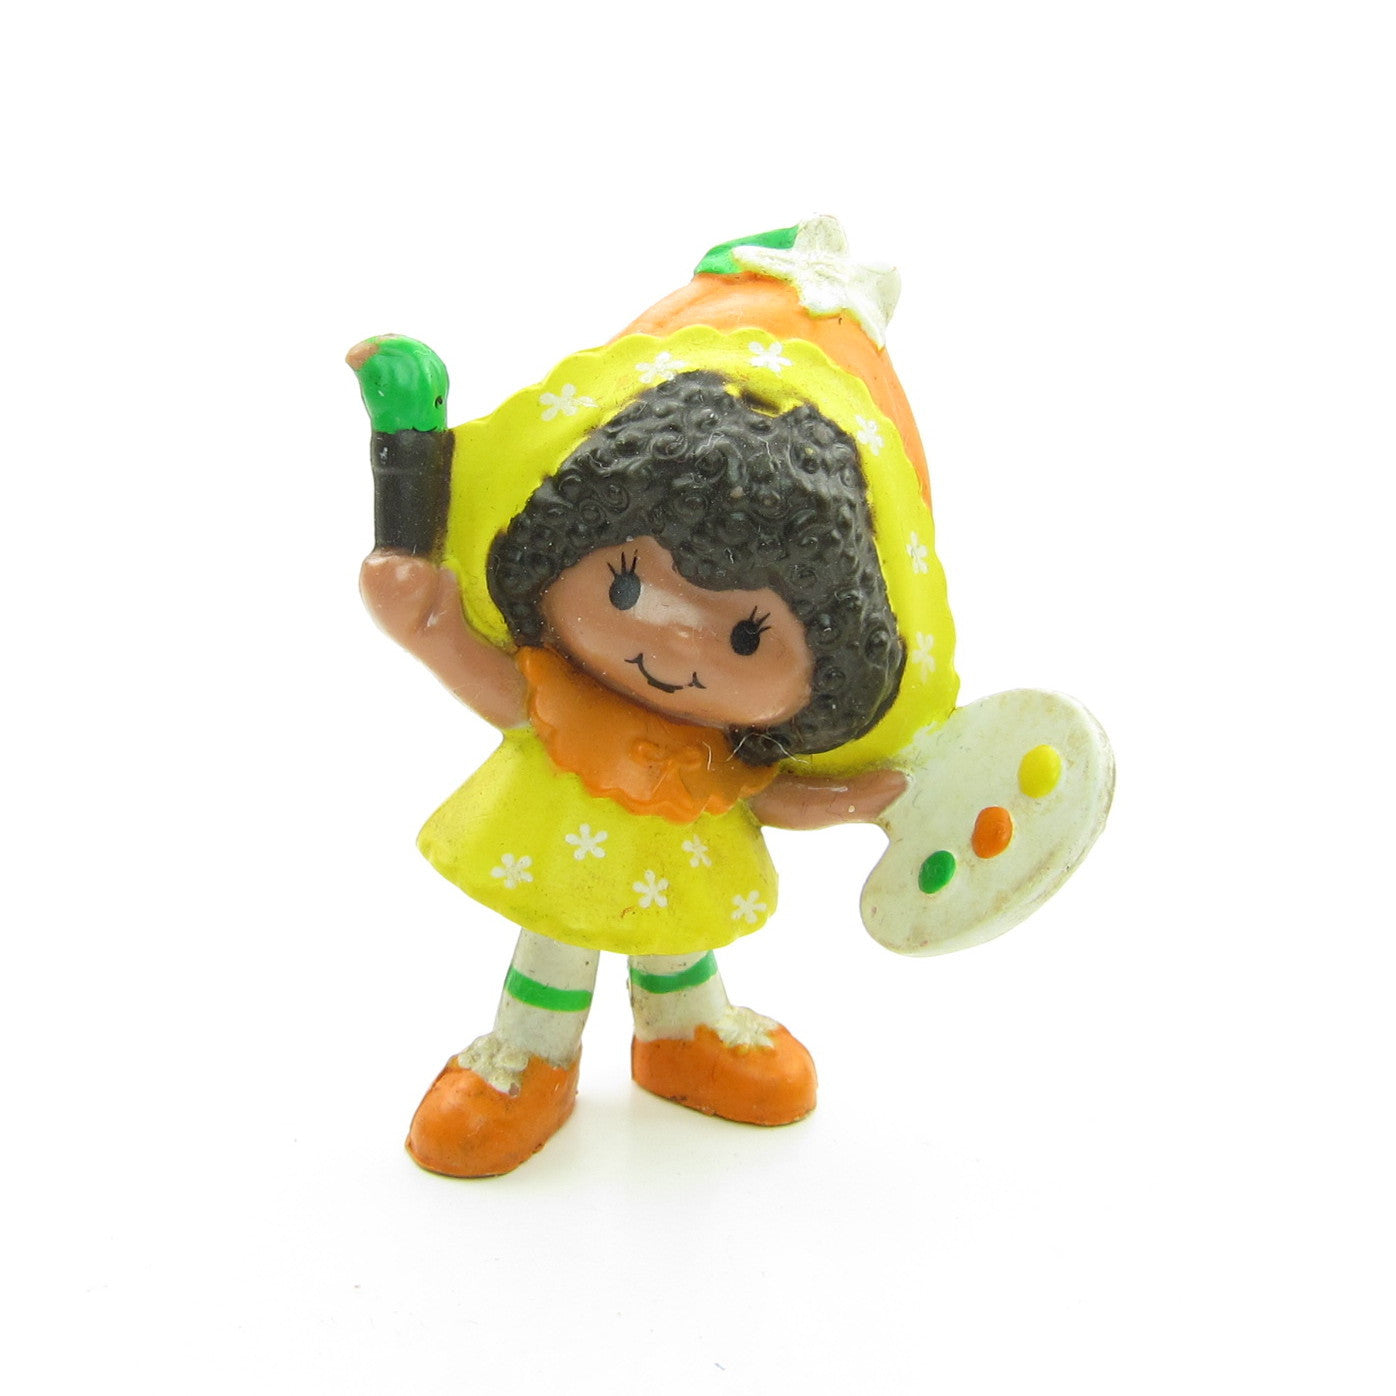 Orange Blossom with Paint Brush miniature figurine